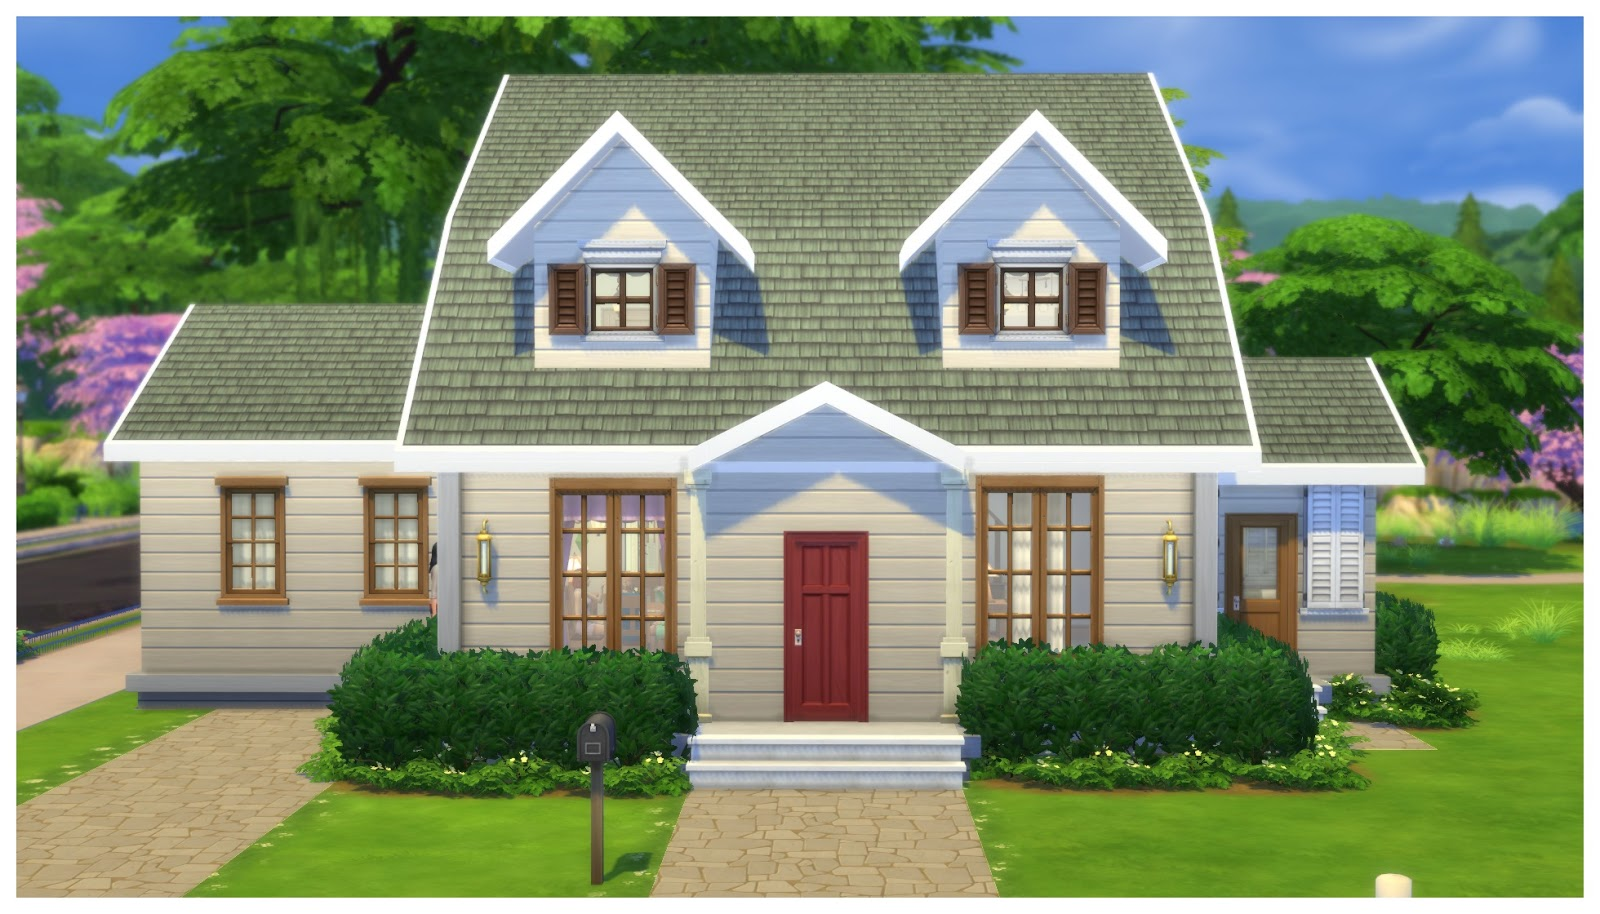 My sims 4 blog family guy house no cc by carldillynson for The family house